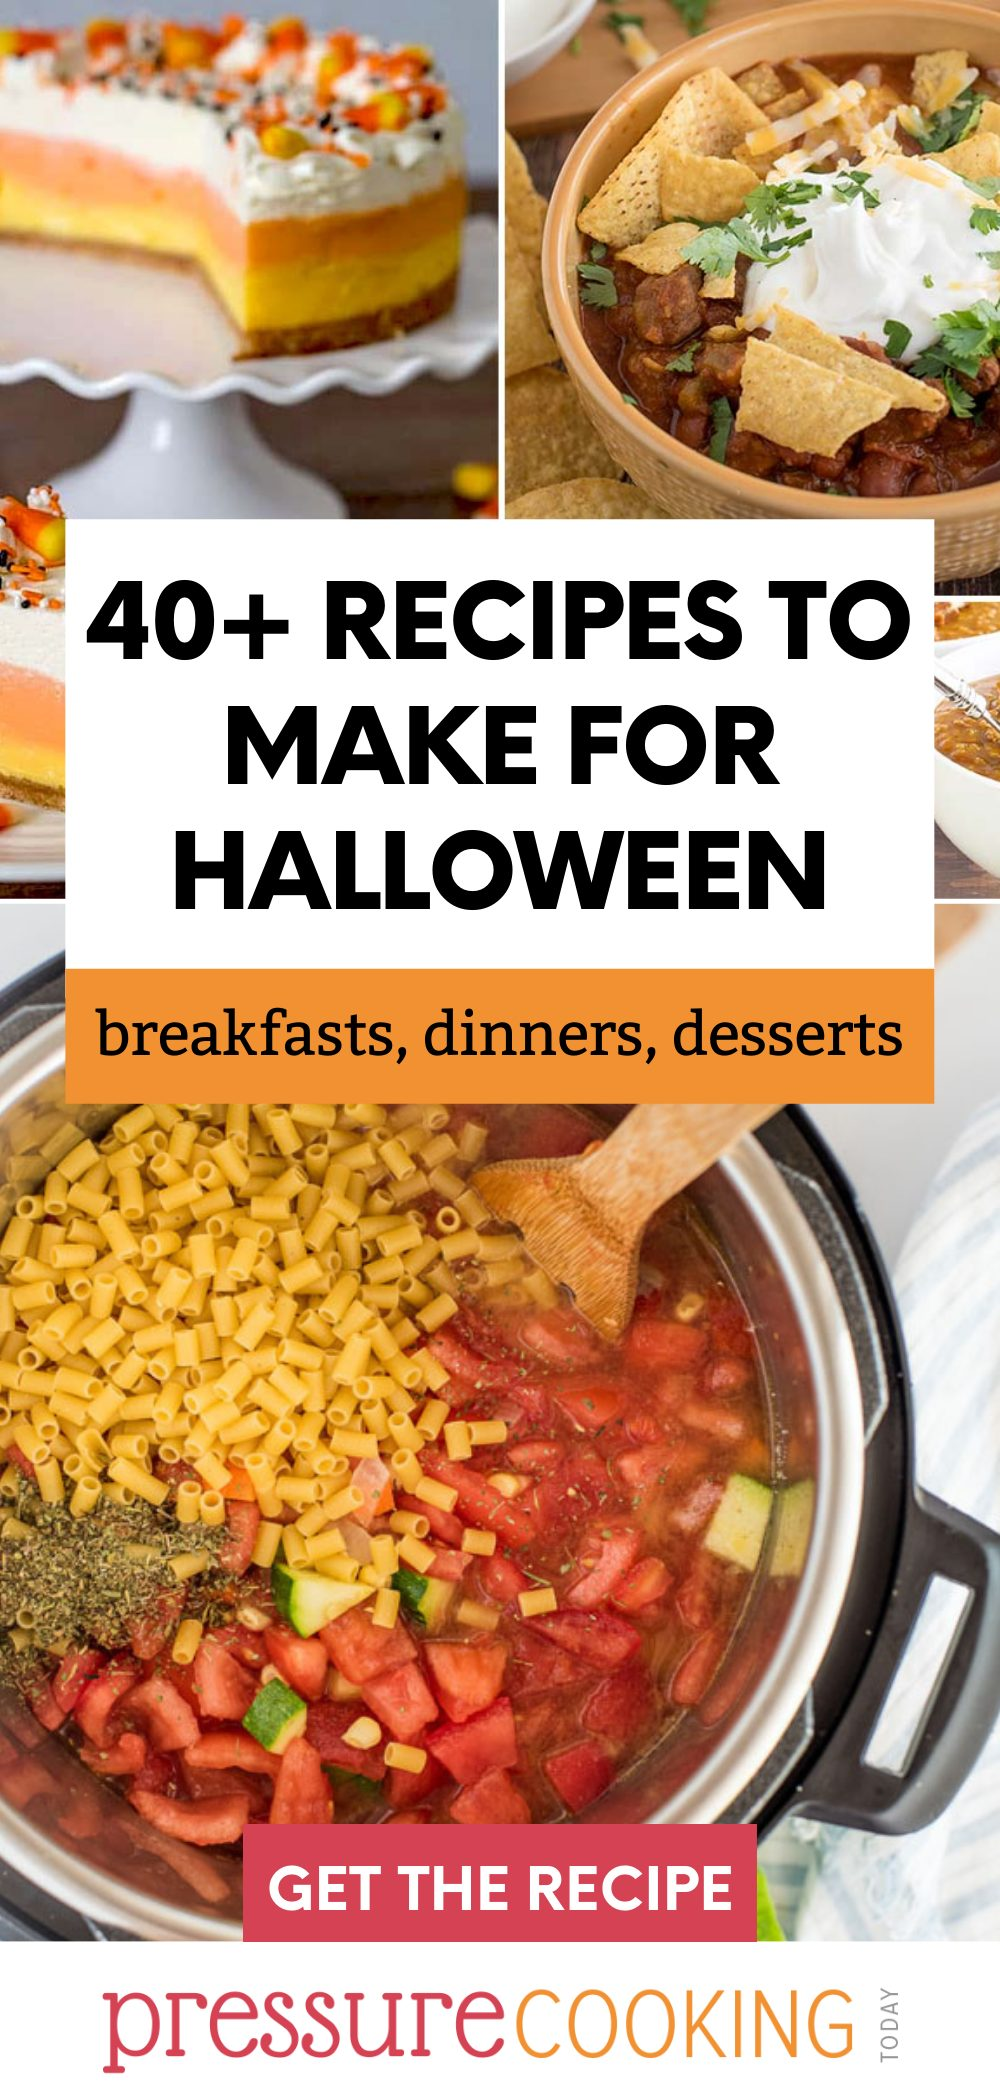 Instant Pot breakfasts + dinners that feature fall flavors and will keep you warm throughout October, plus AMAZING DESSERTS to celebrate Halloween with (and use up your extra candy)! via @PressureCook2da